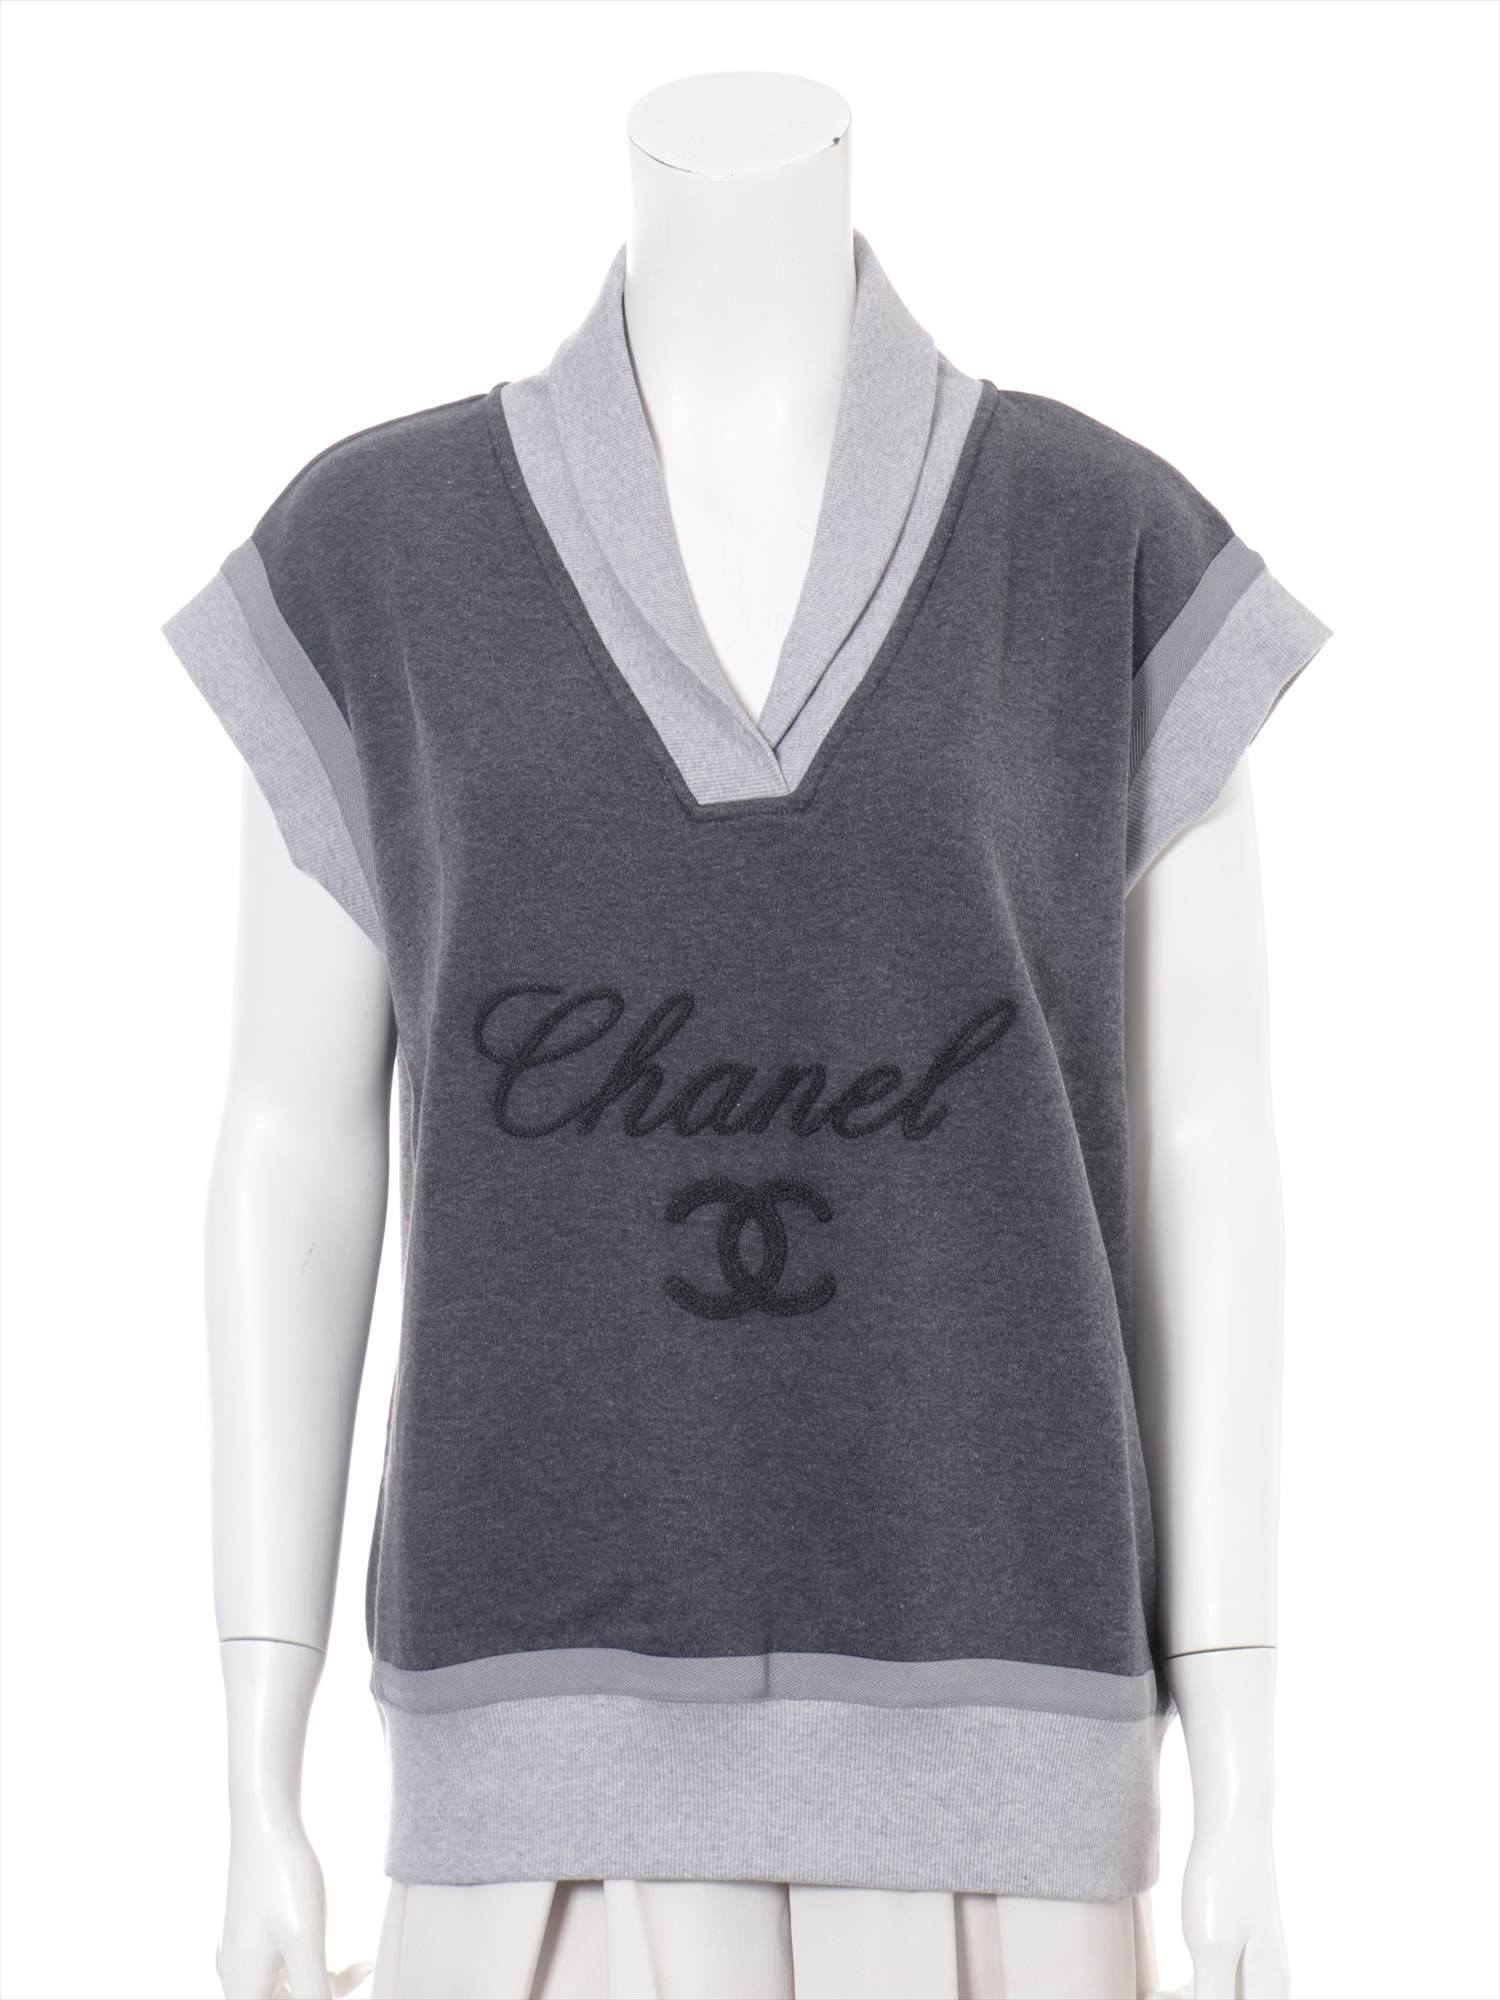 [Used goods] Chanel Cotton Sweat Size: 46 Ladies gray short-sleeved P38